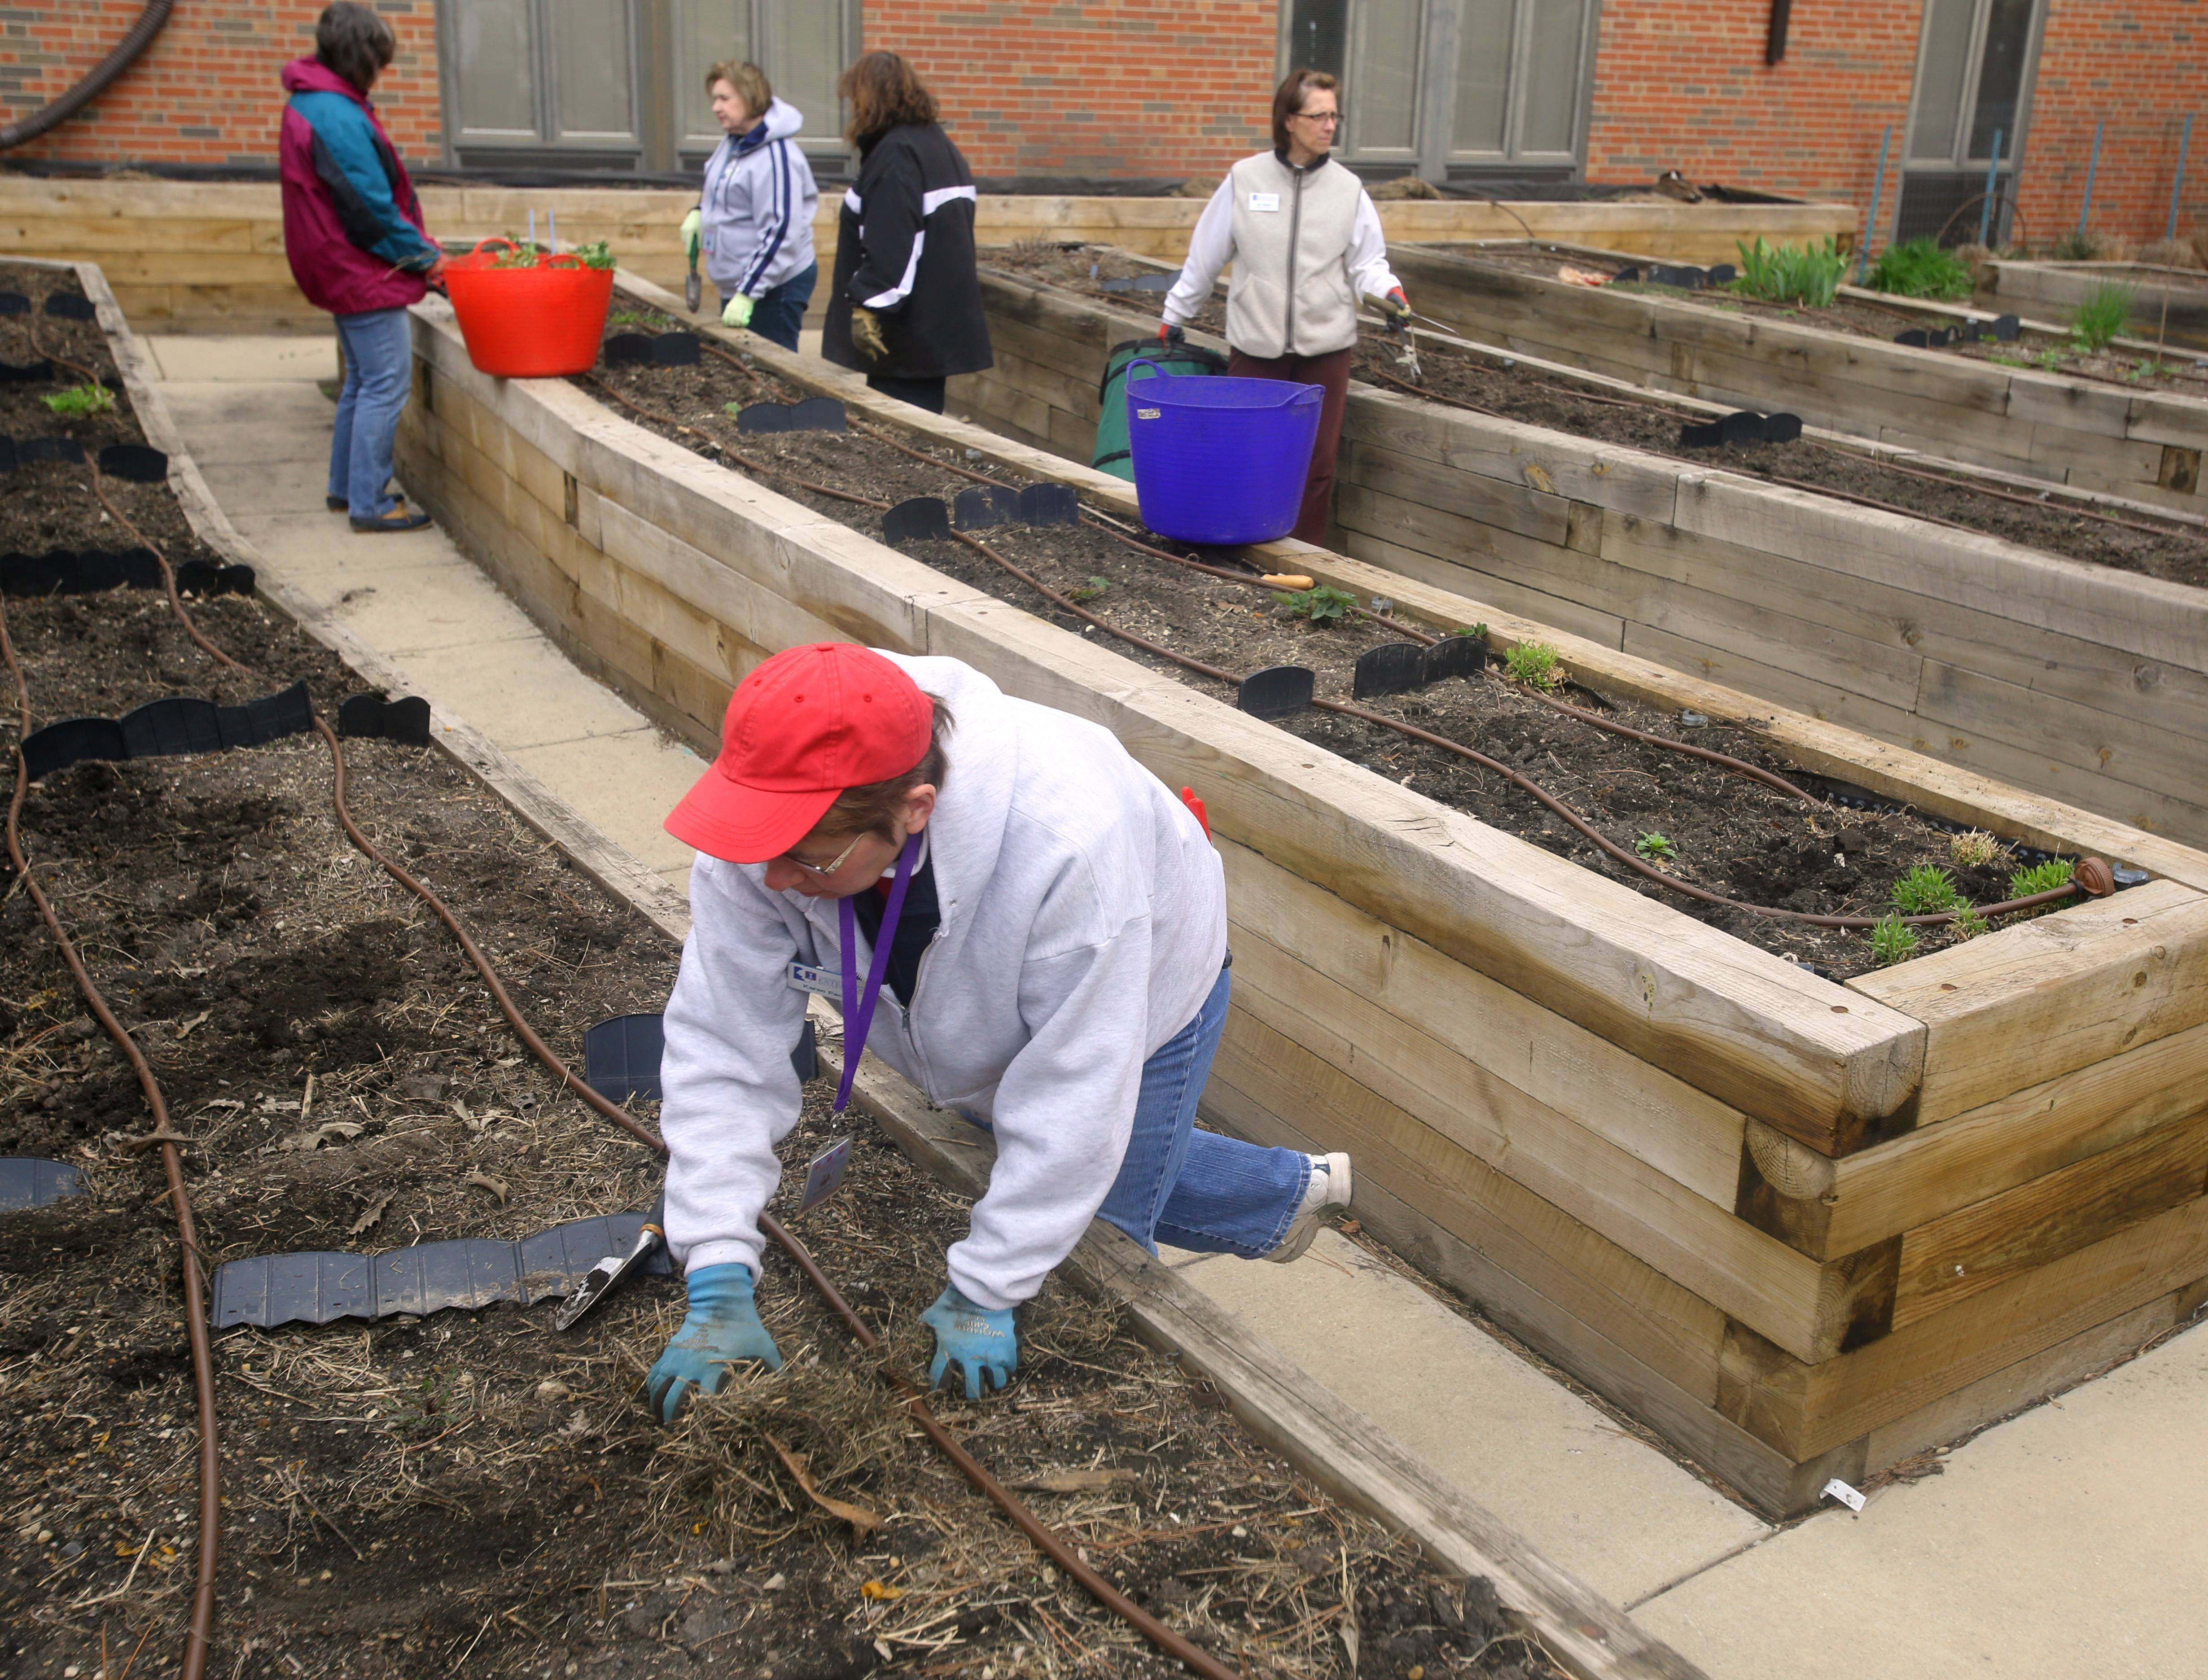 Karen Pachyn of Elmhurst, foreground, along with other University of Illinois master gardeners, prepares raised garden beds for planting at the DuPage Convalescent Center in Wheaton.